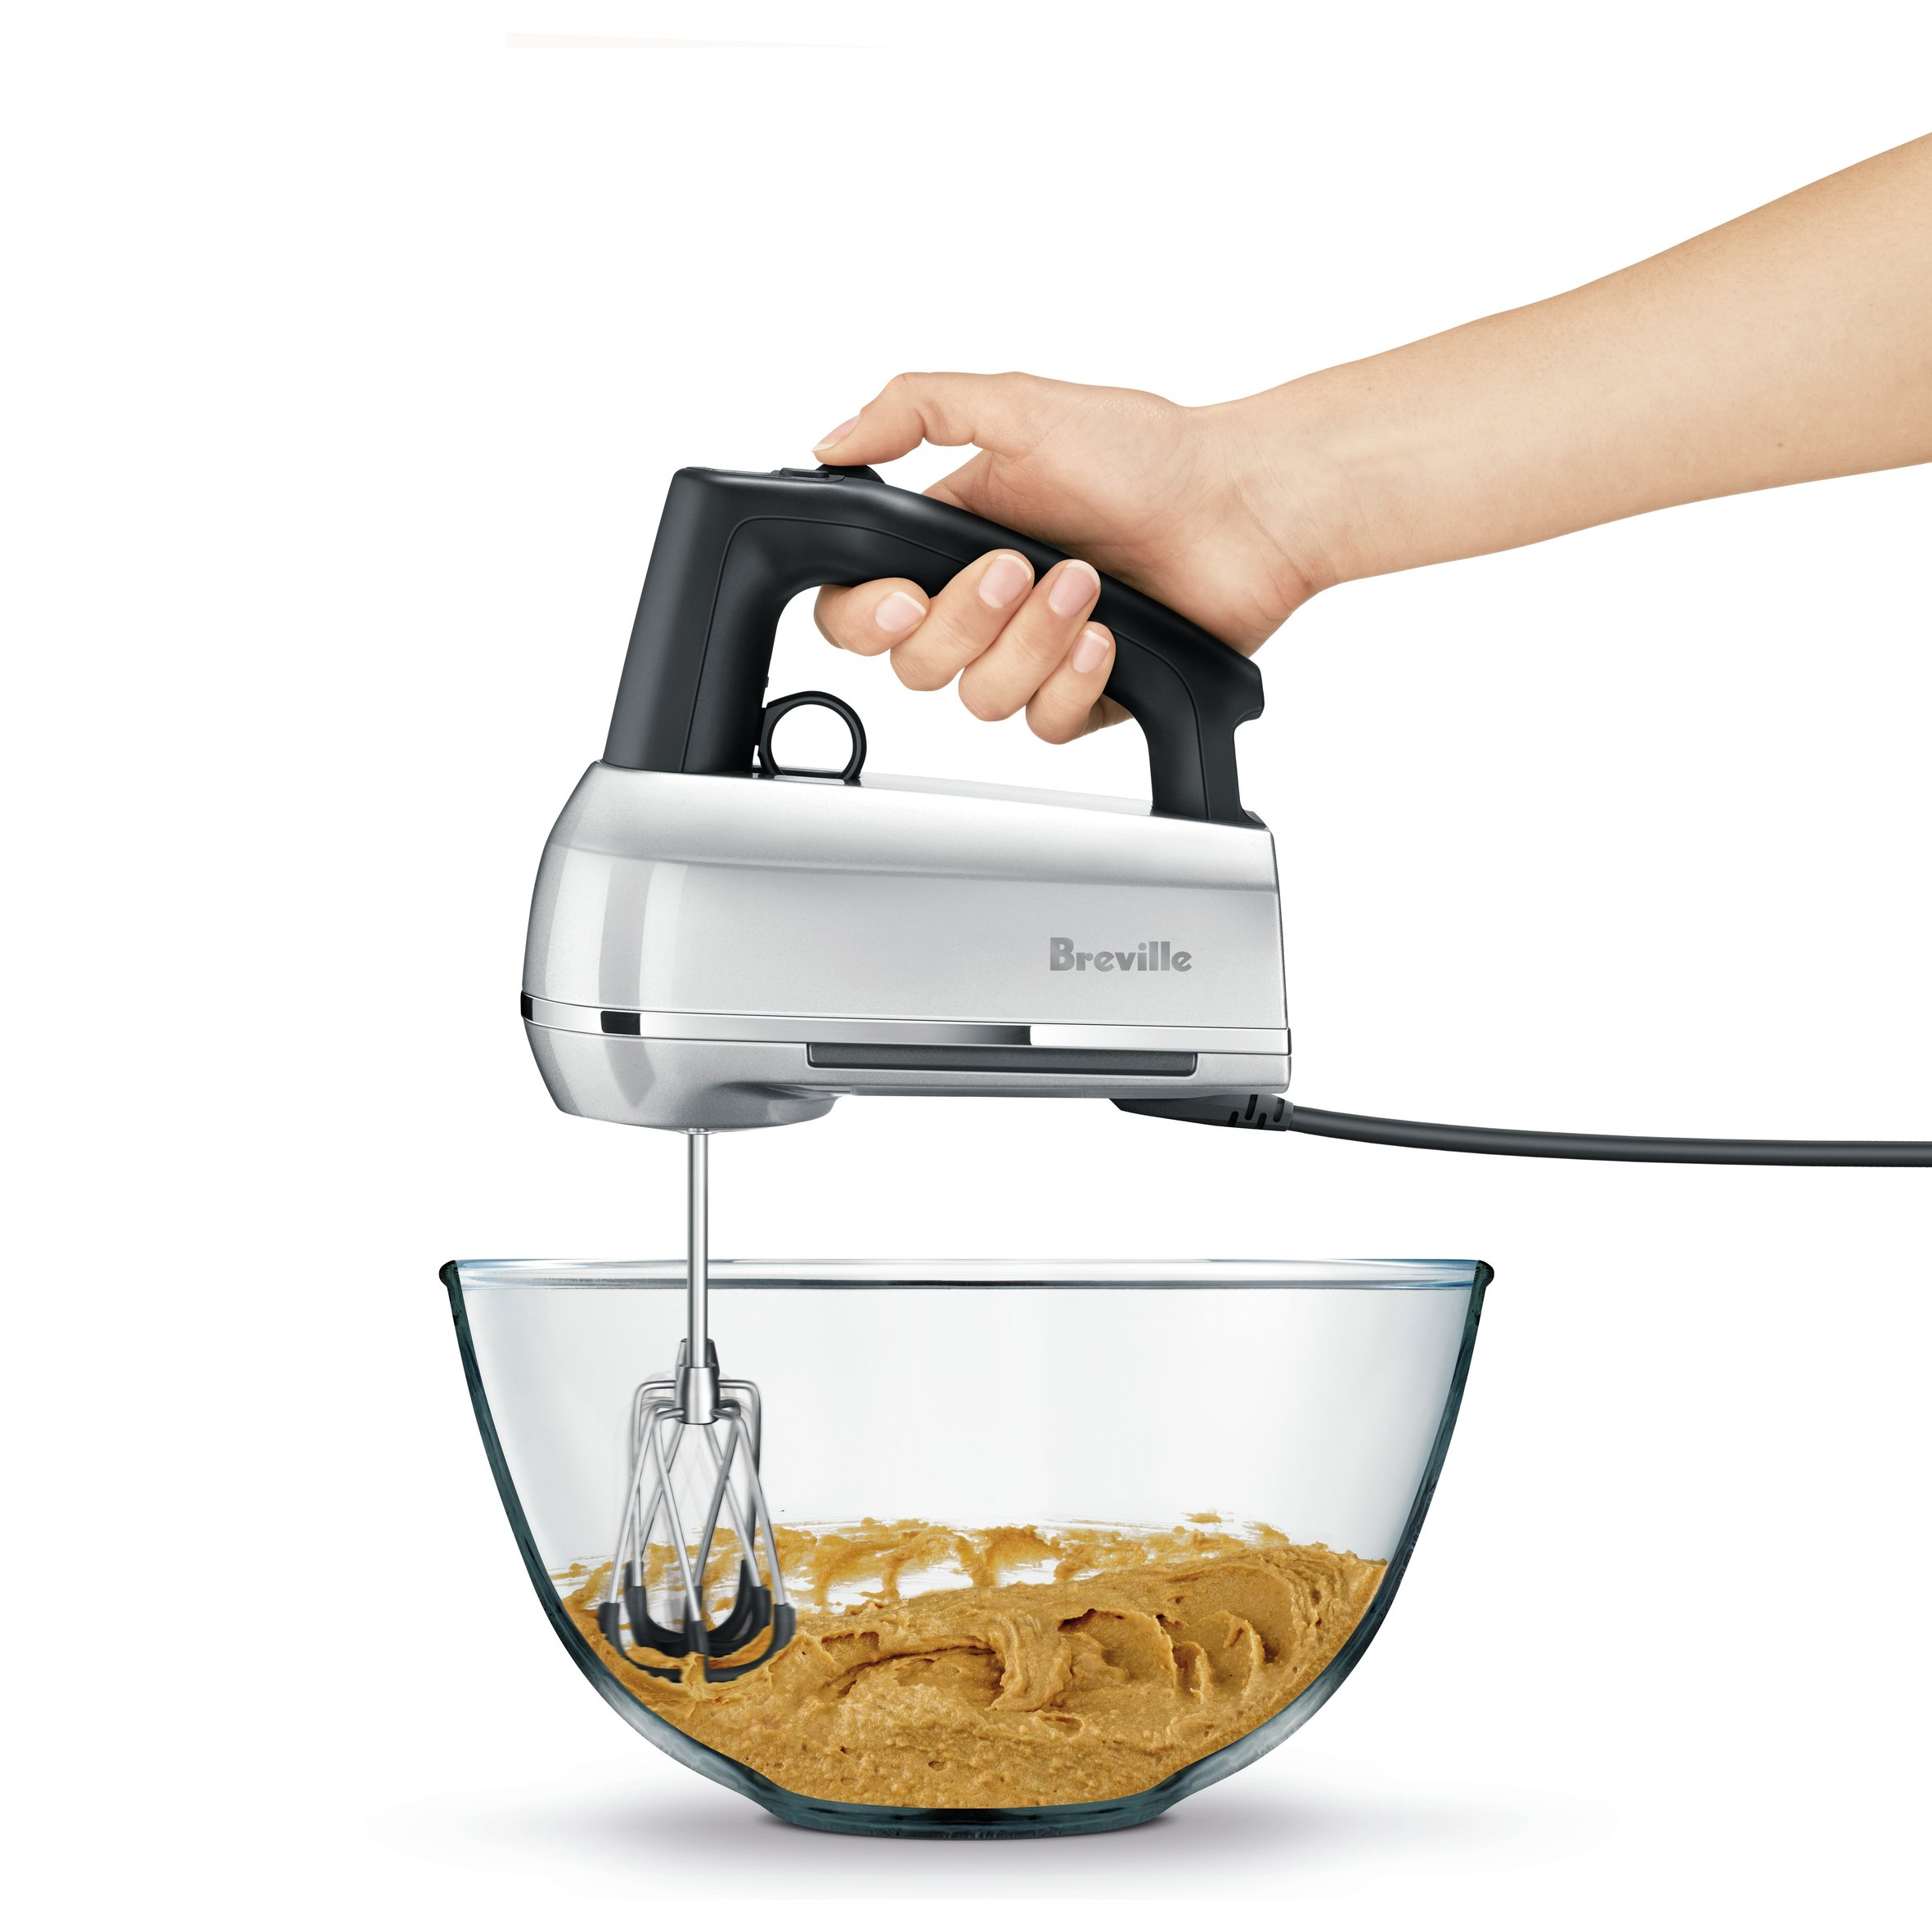 Breville BHM800SIL Handy Mix Scraper Hand Mixer, Silver by Breville (Image #1)